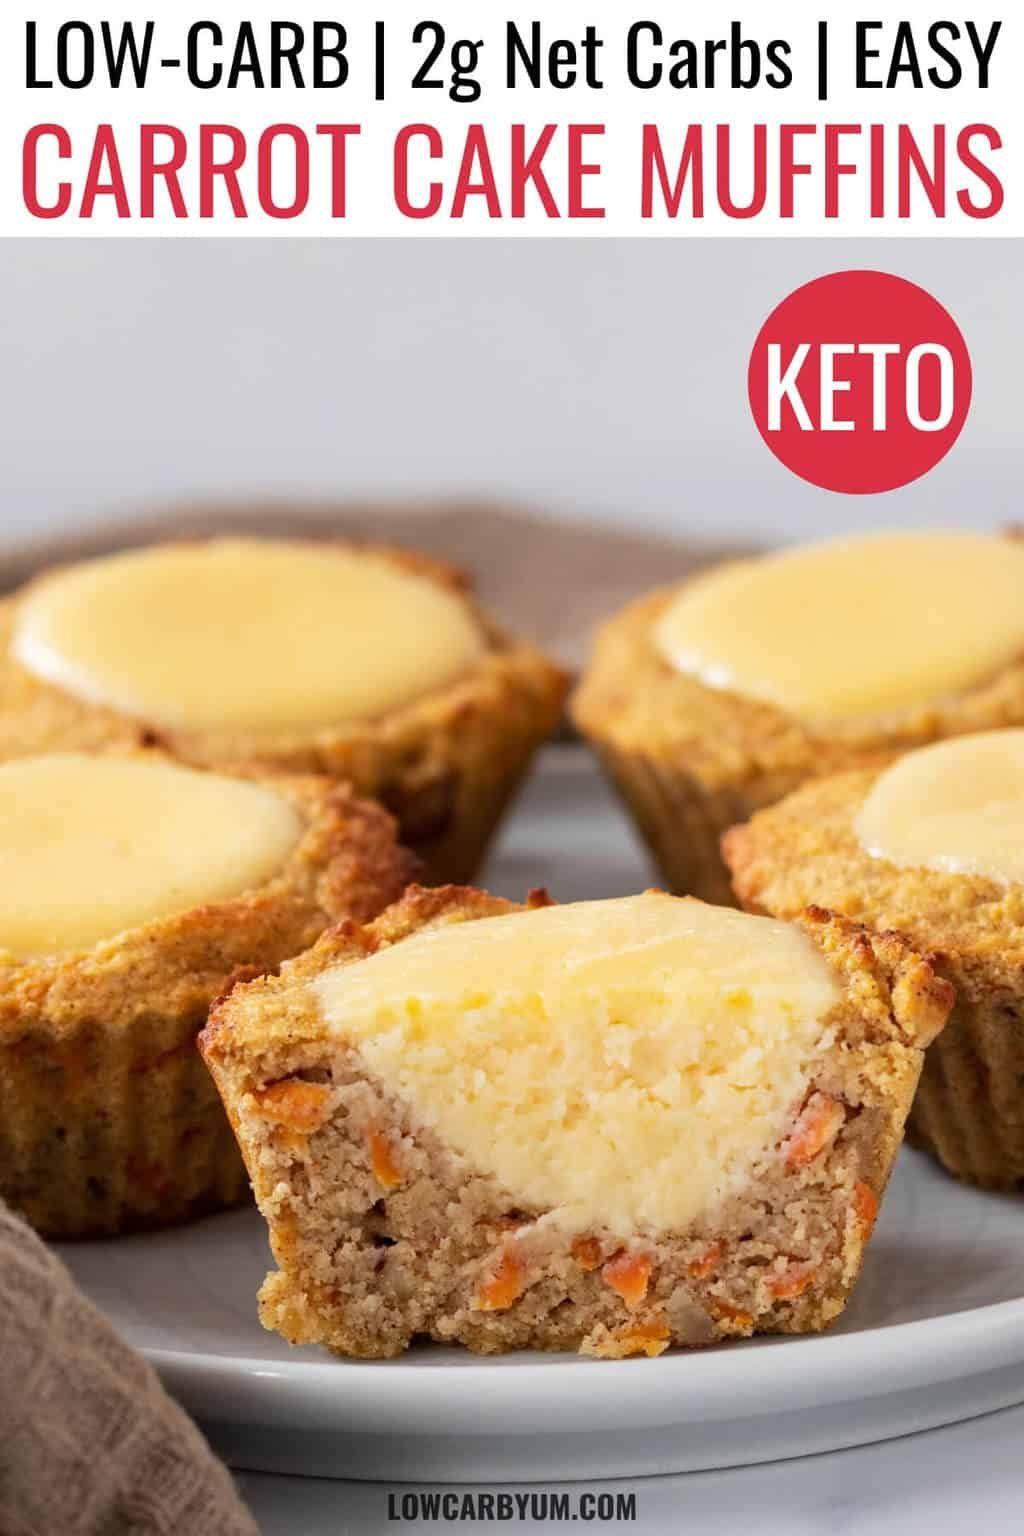 Keto Carrot Cake Muffins with Cream Cheese Filling